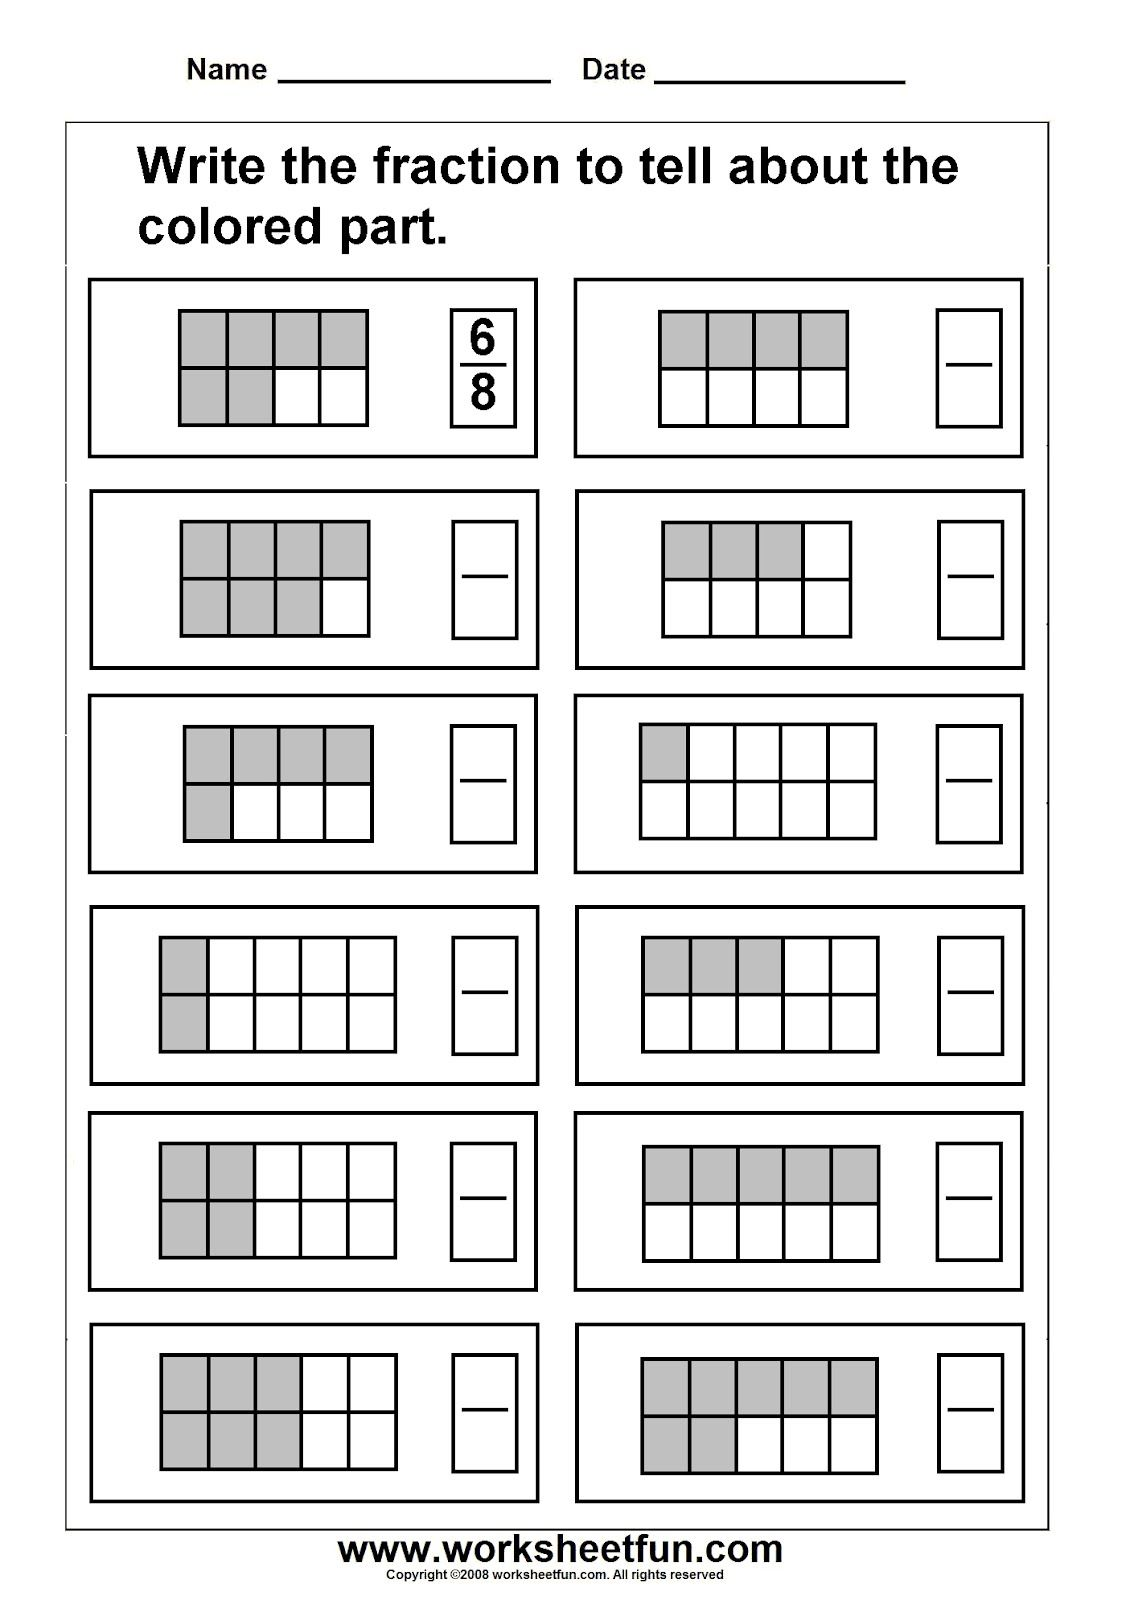 math worksheet : fractions  educationenglish free worksheets  pinterest  fractions : Writing Fractions Worksheet